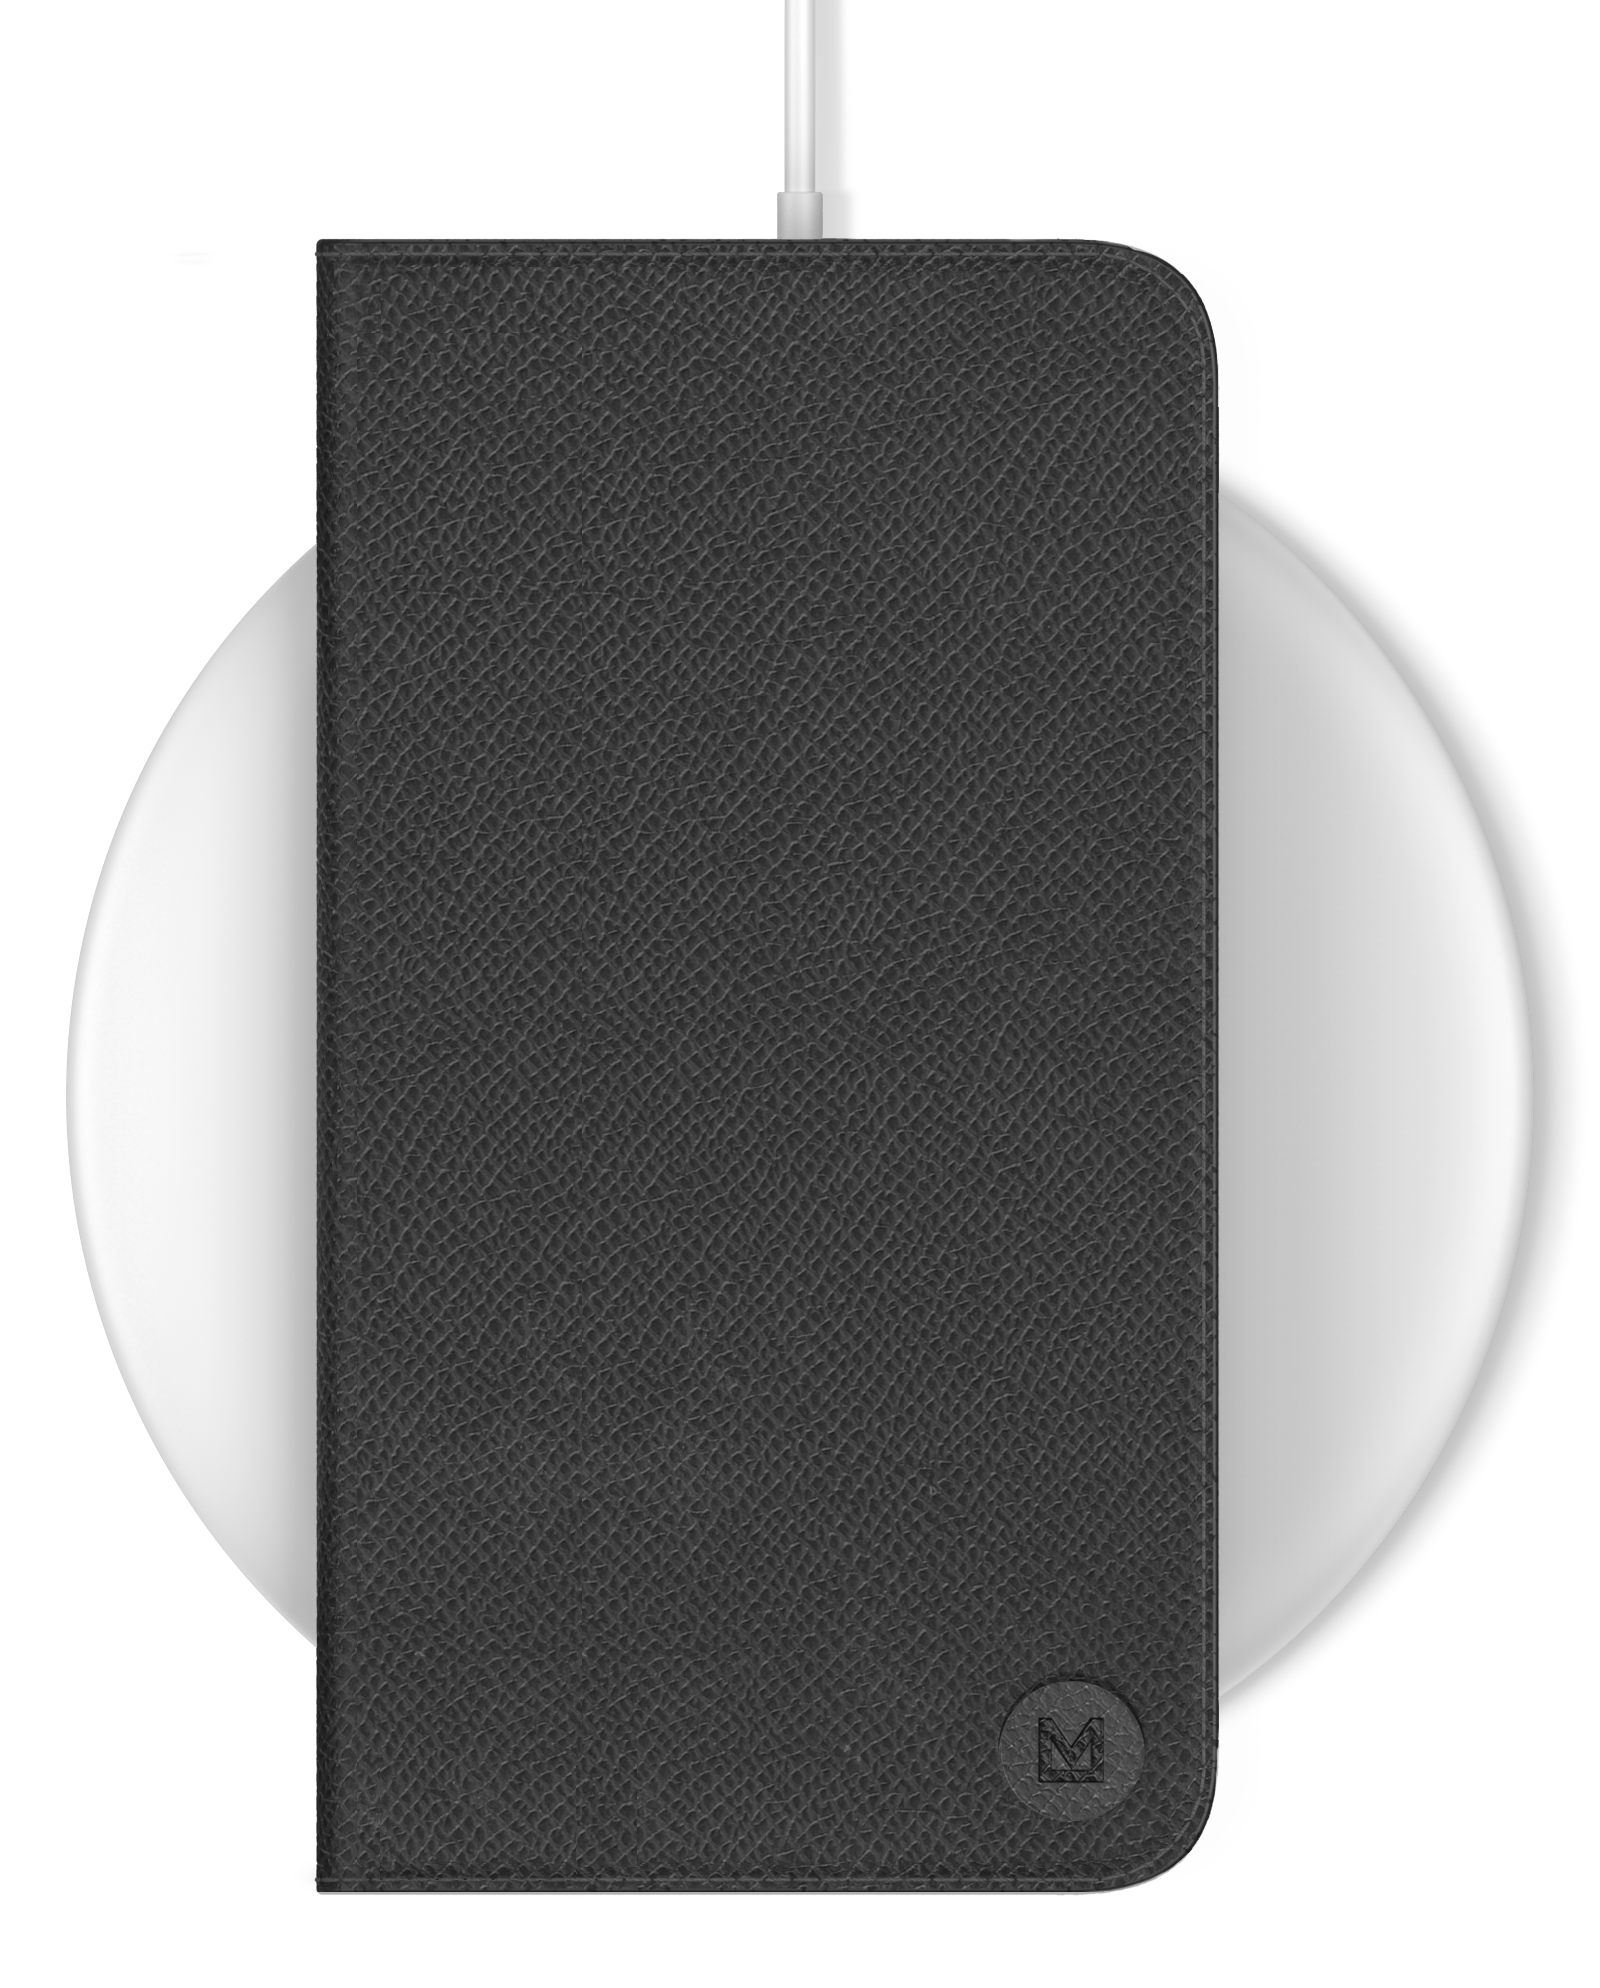 Cell phone wirelessly charging with Mason folio case